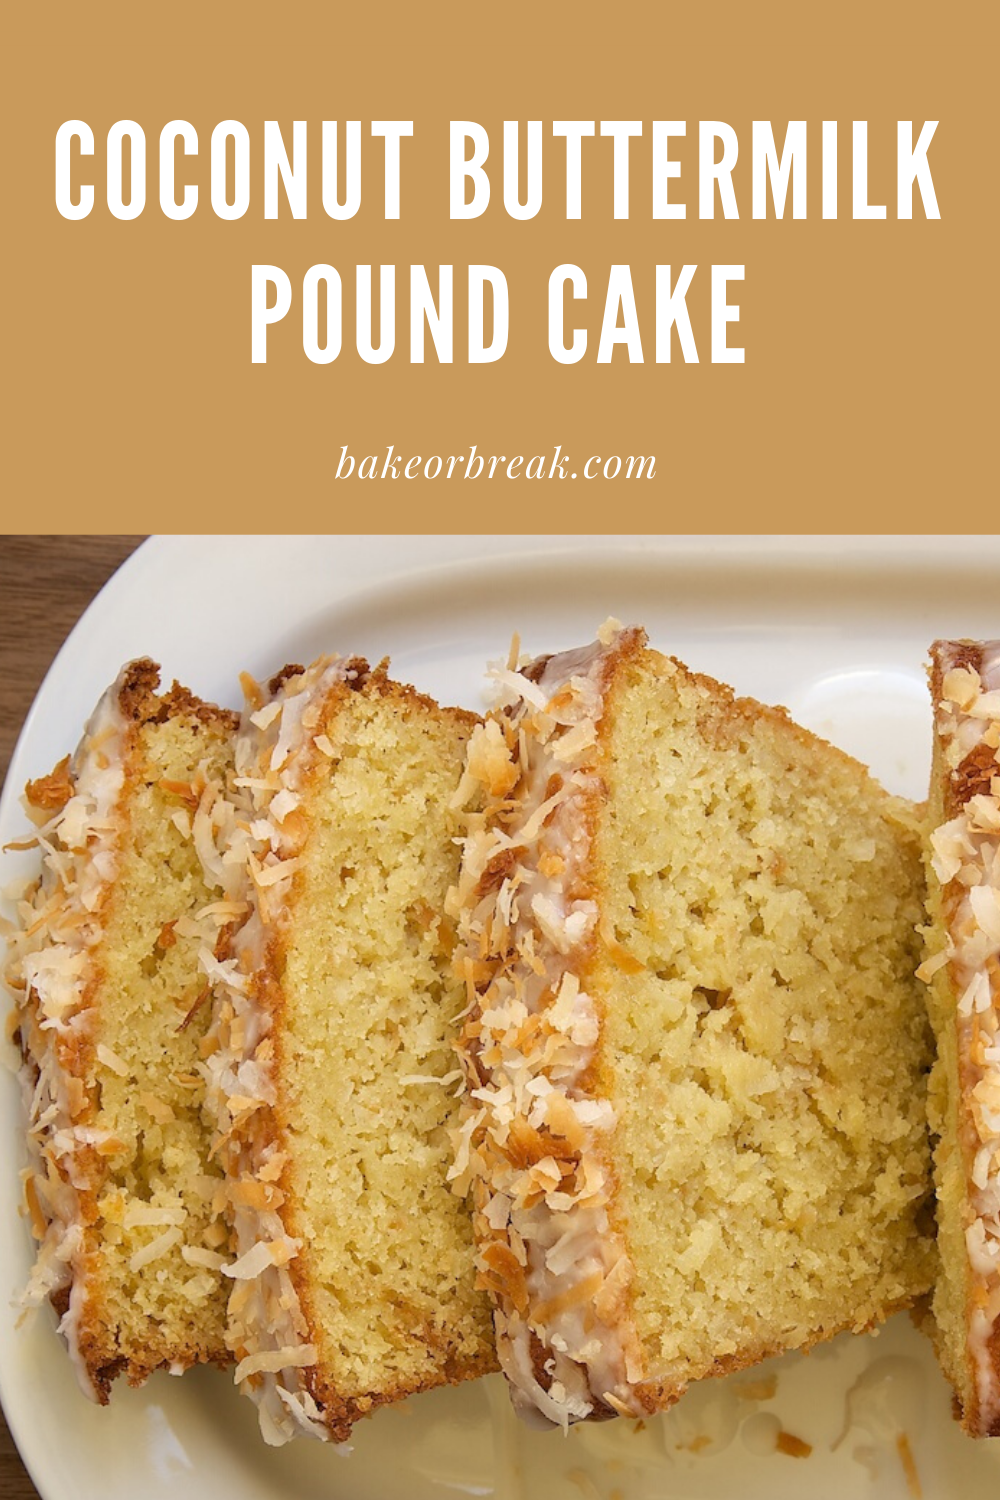 Coconut Buttermilk Pound Cake Bake Or Break In 2020 Buttermilk Pound Cake Dessert Recipes Easy Pound Cake Recipes